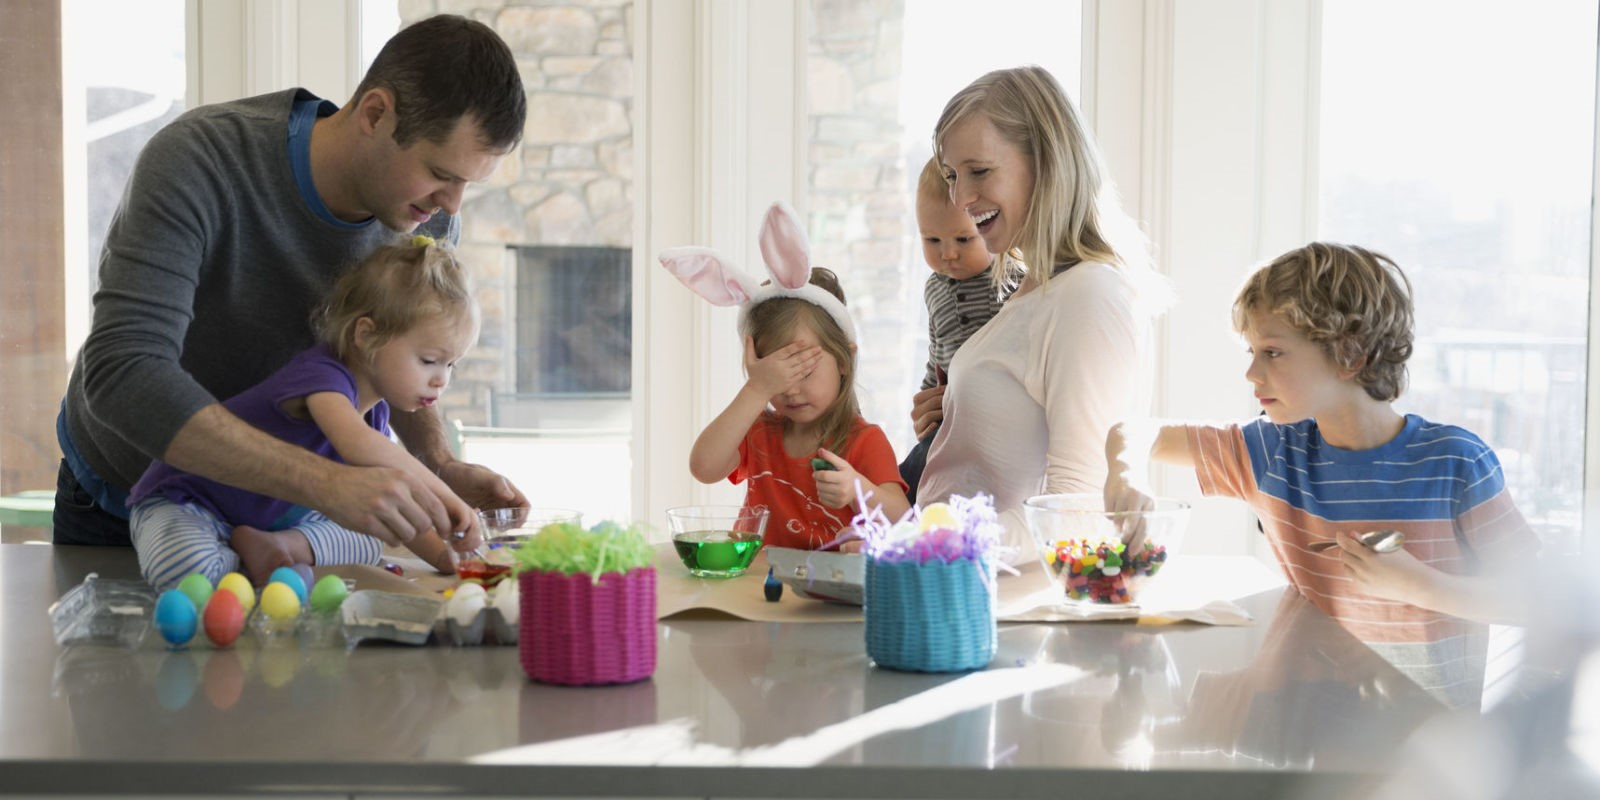 landscape-1492200950-family-colouring-easter-eggs-in-kitchen